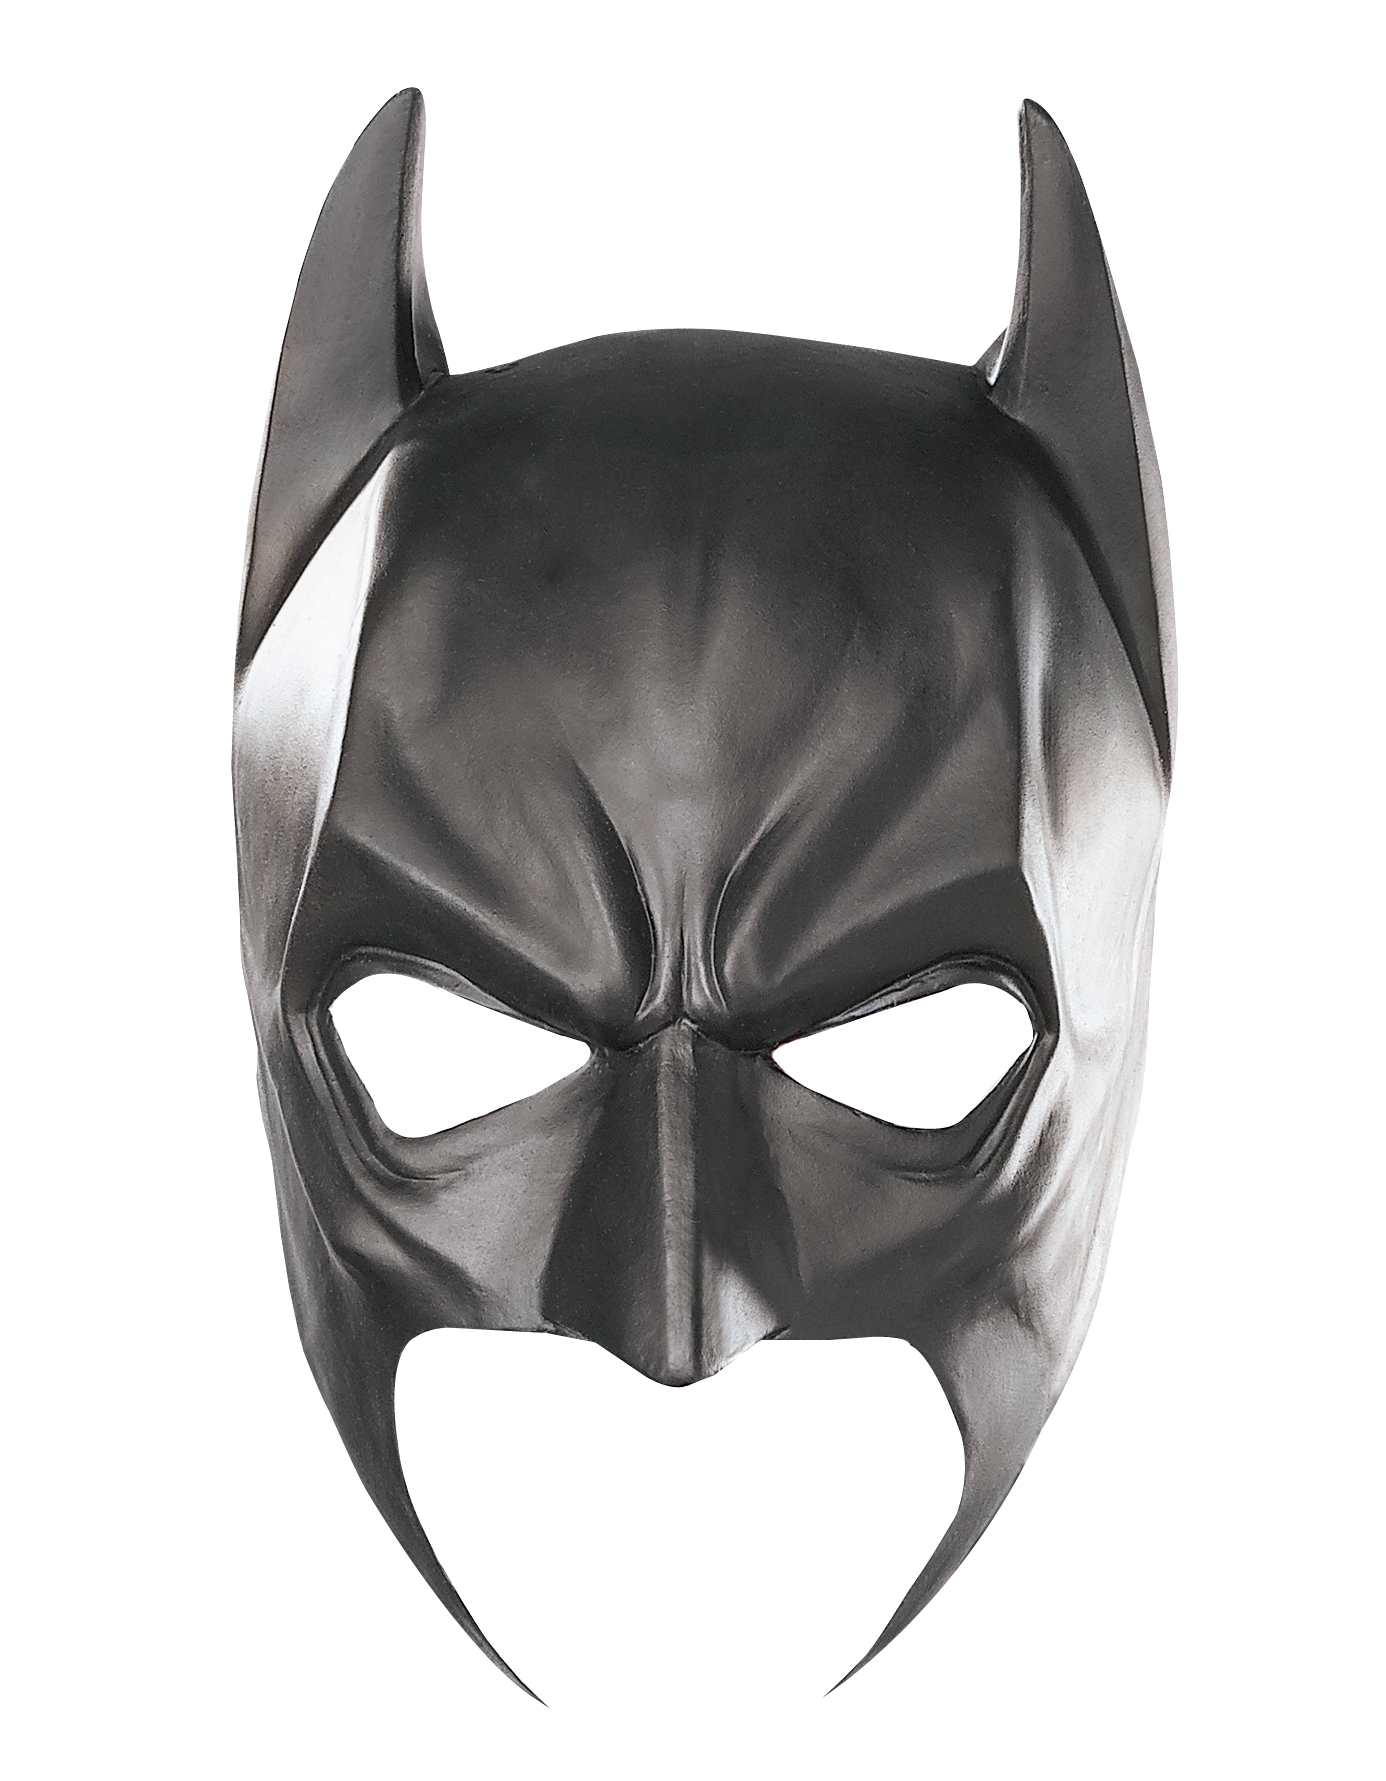 Batman PNG Image Without Background